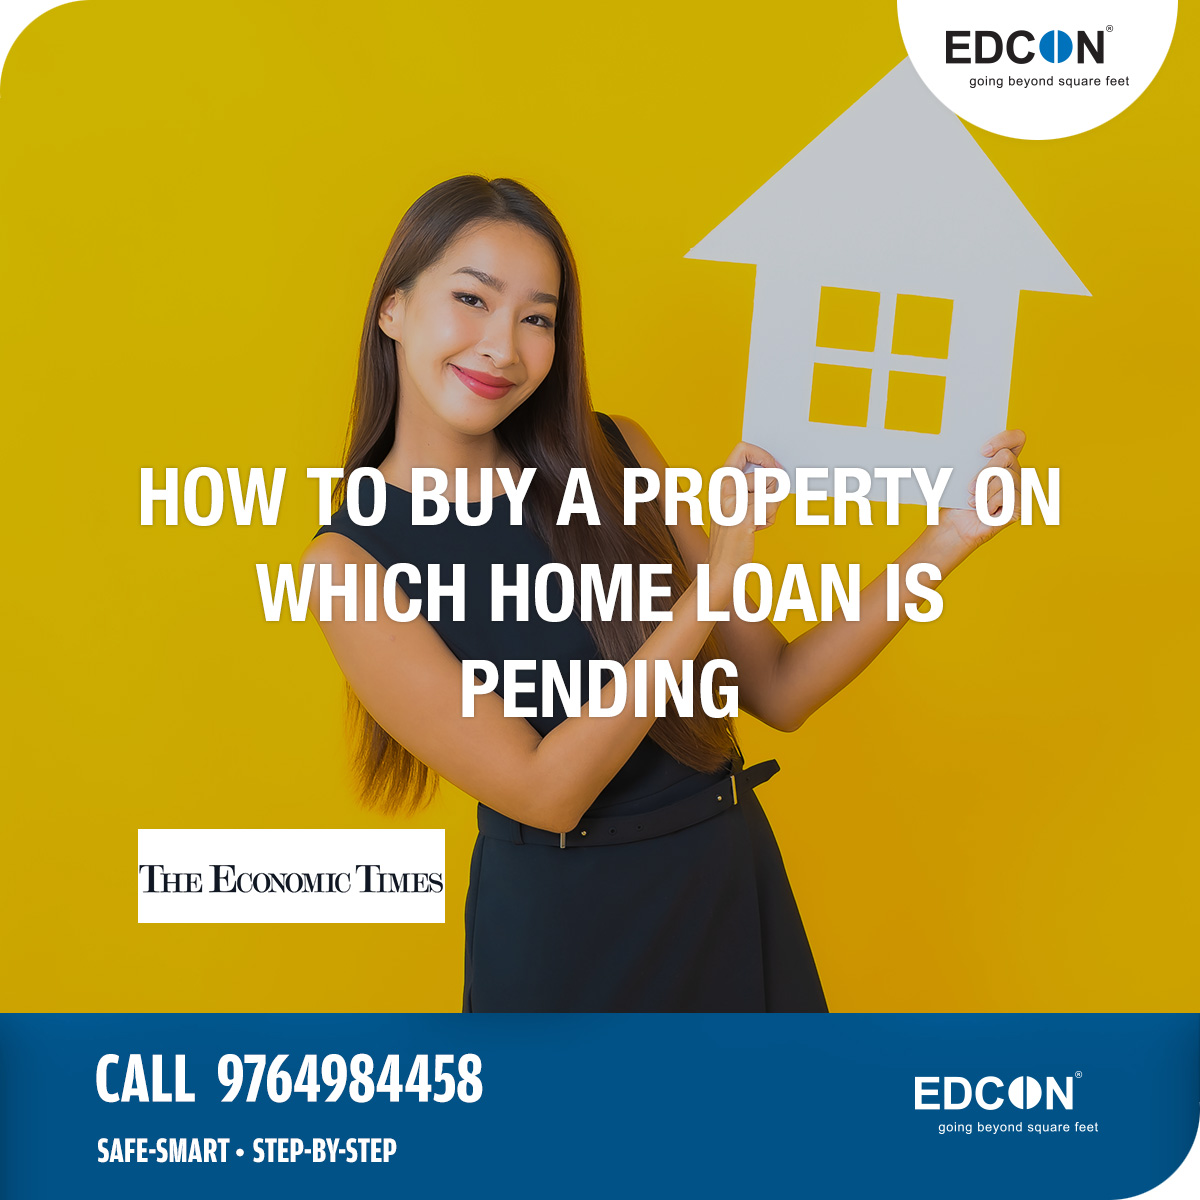 How to buy a property on which home loan is pending